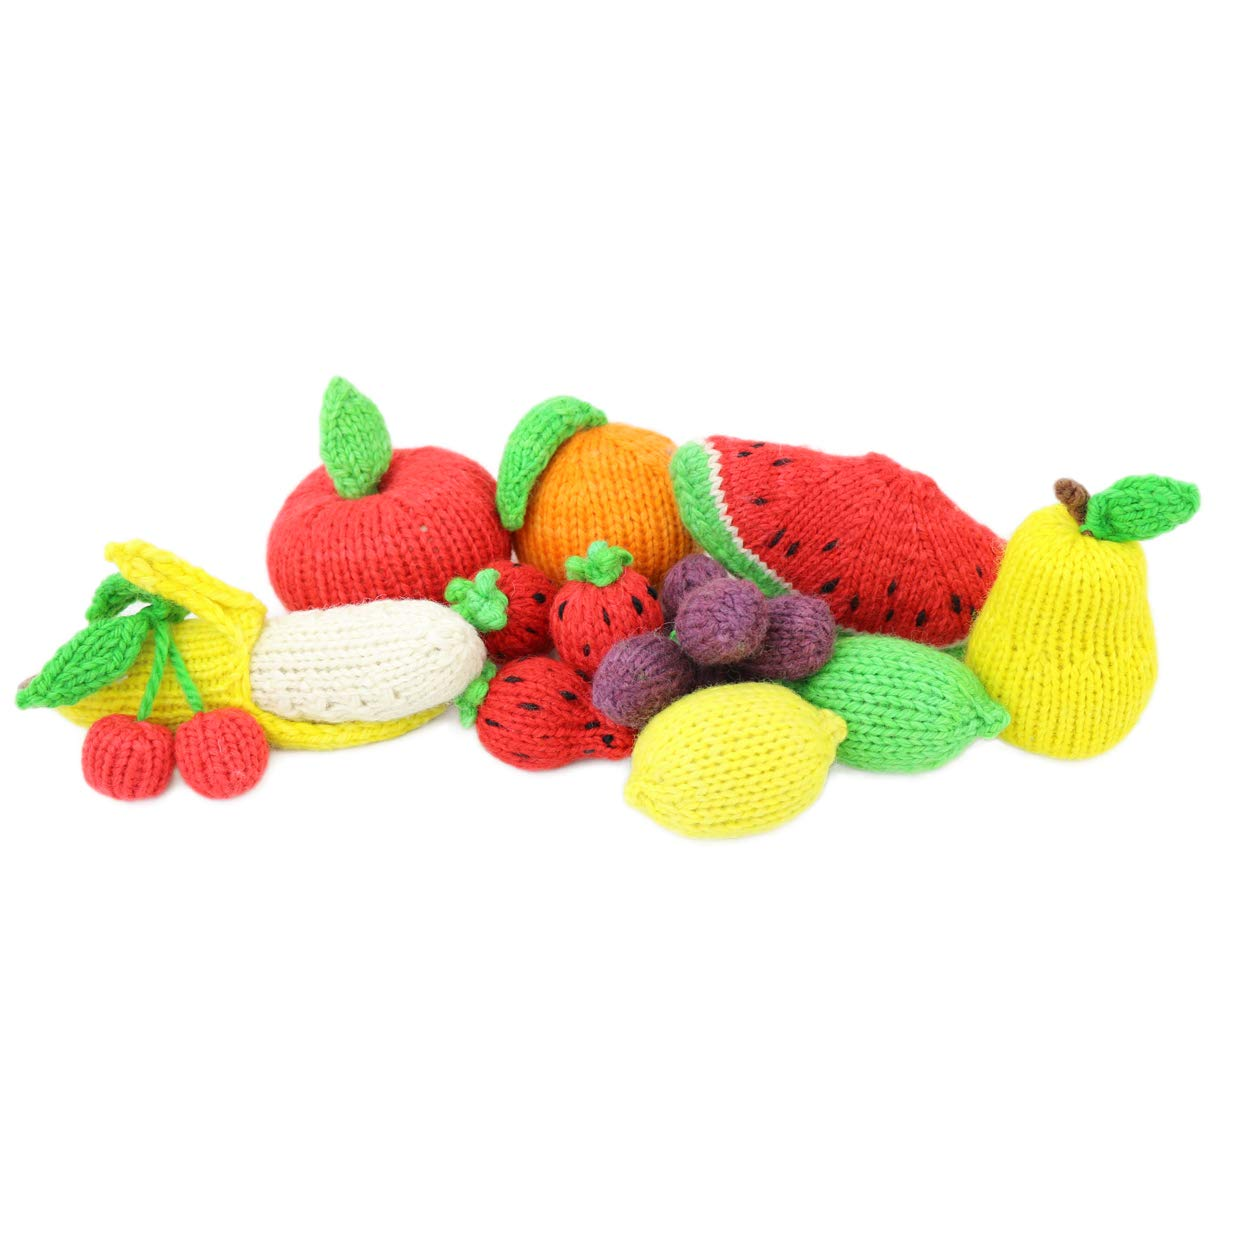 Camden Rose Knitted Play Food Set - Fruit Variety, 12 Pieces